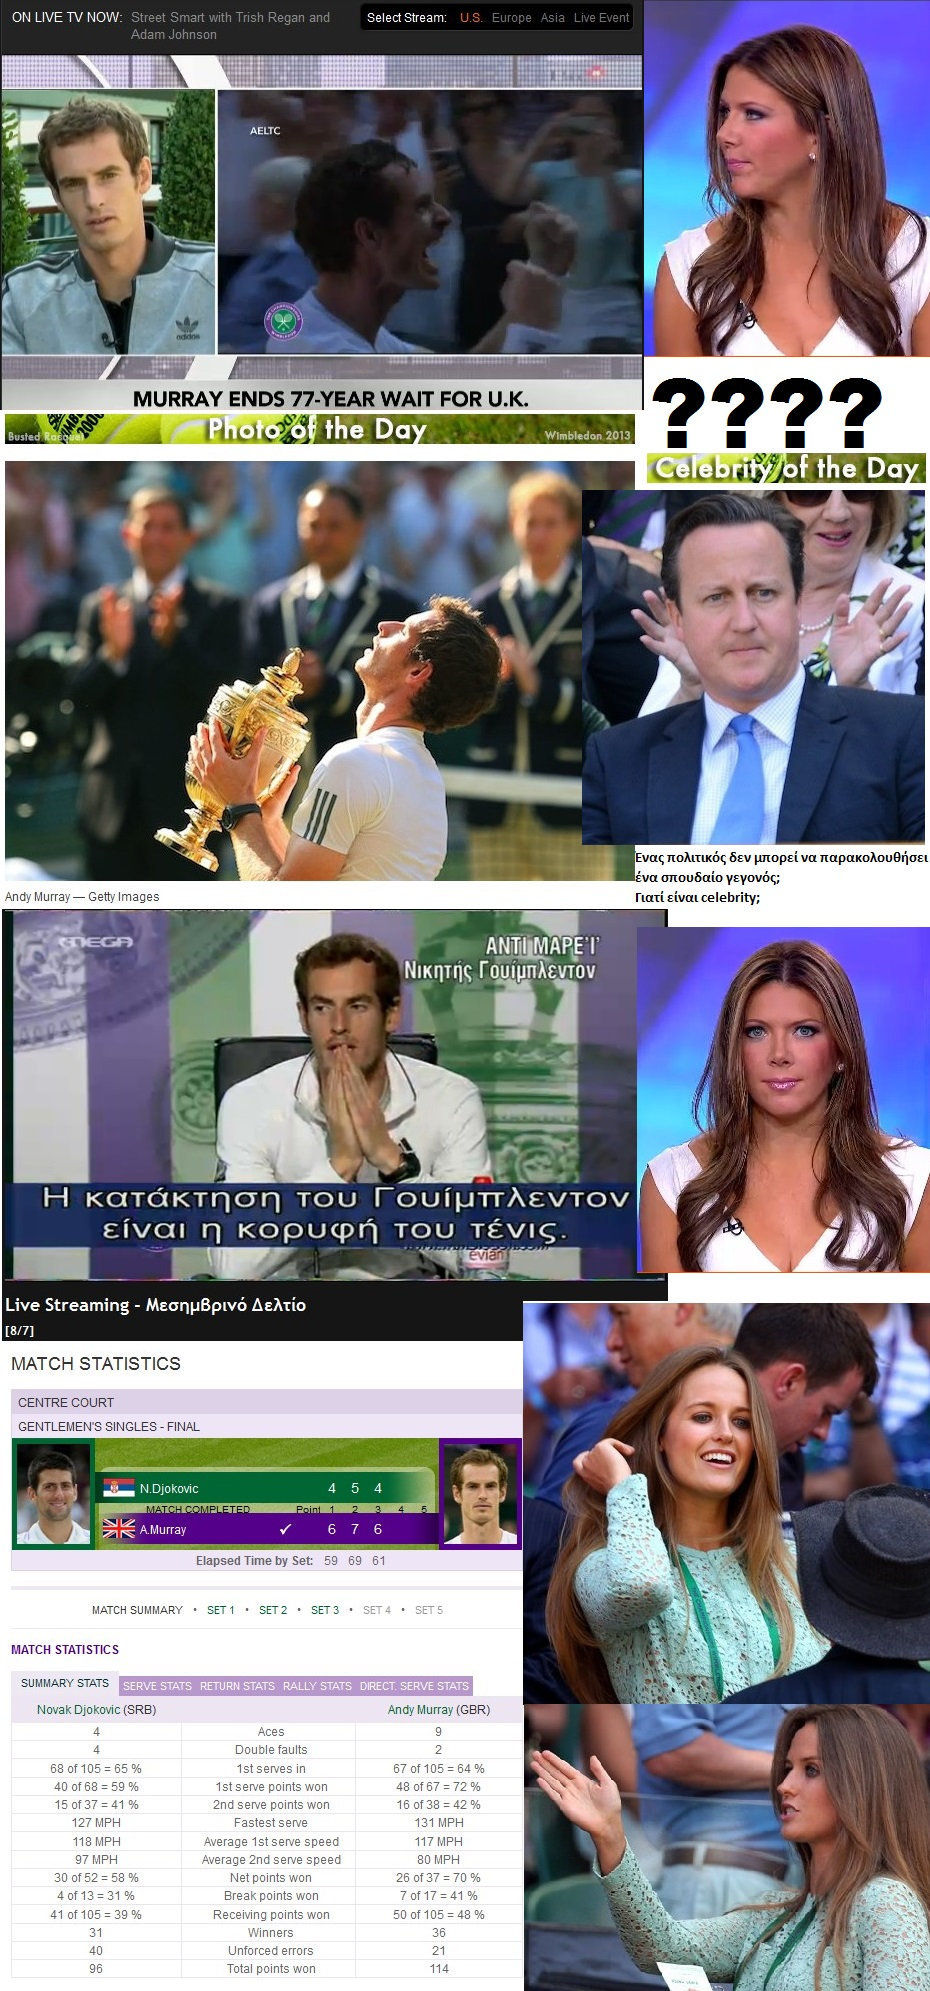 TENNIS WIMBLEDON ANDY MURRAY WIN 2013